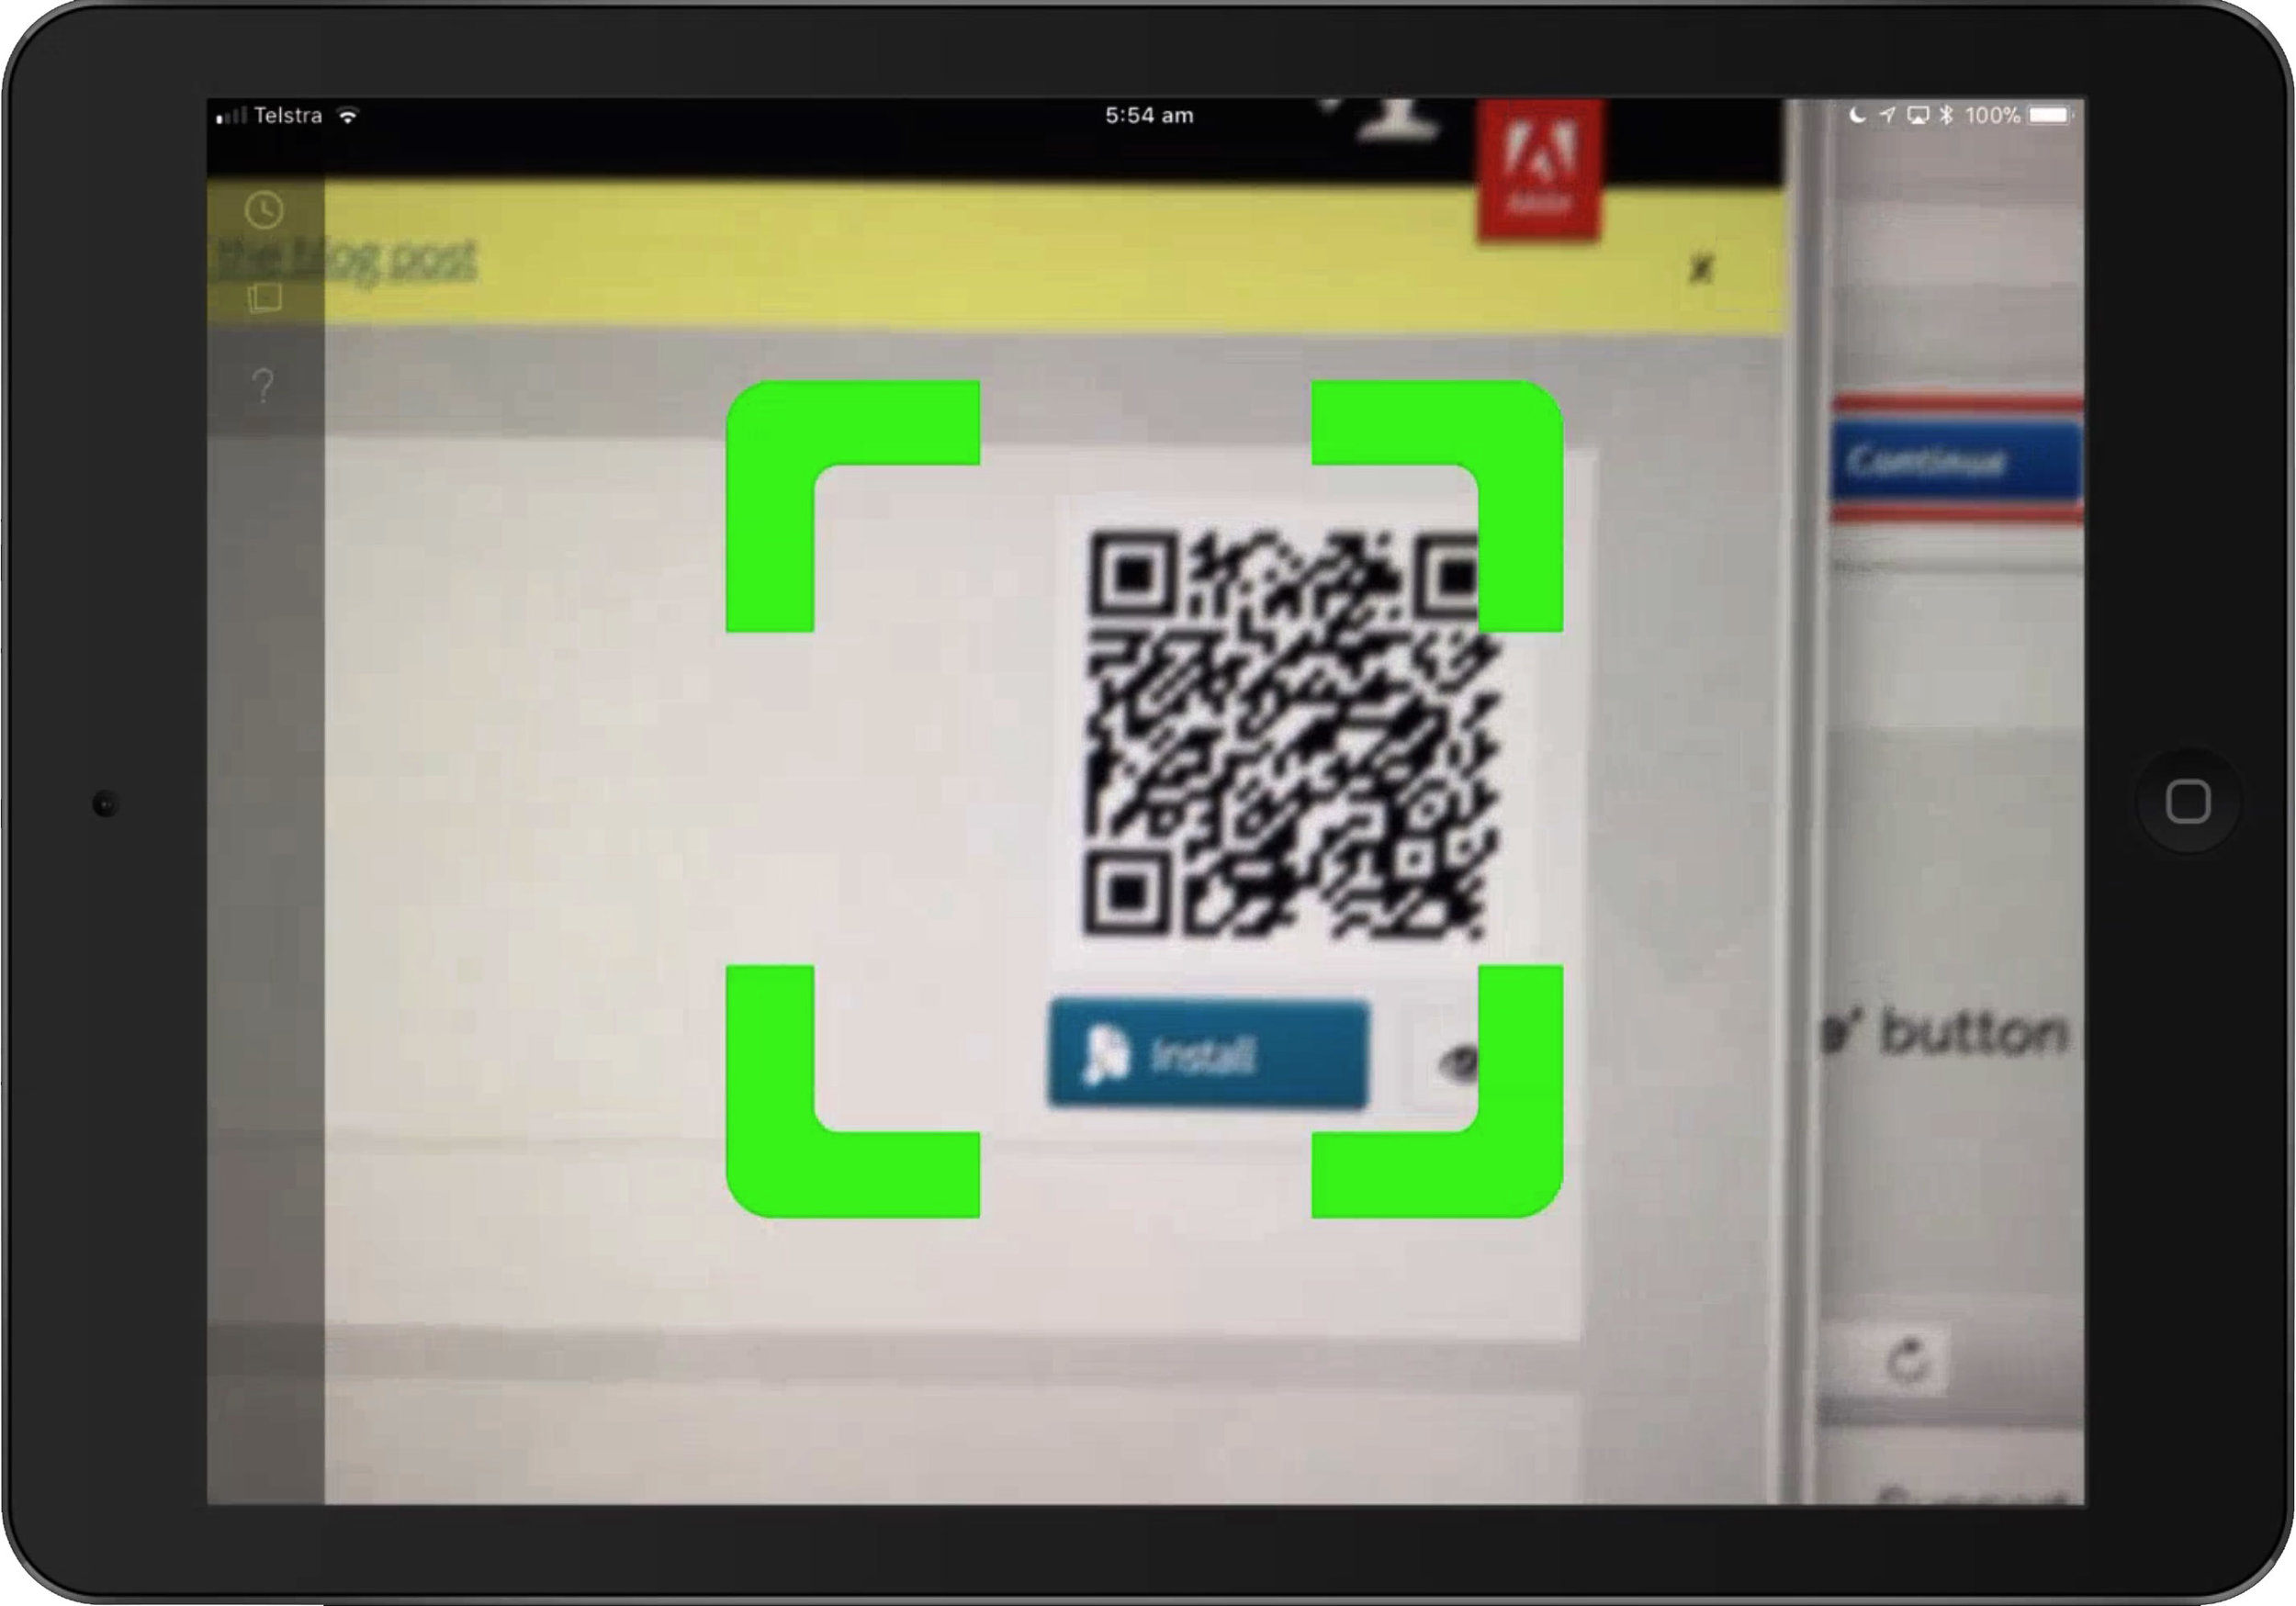 figure #16: QR scan on the iPad